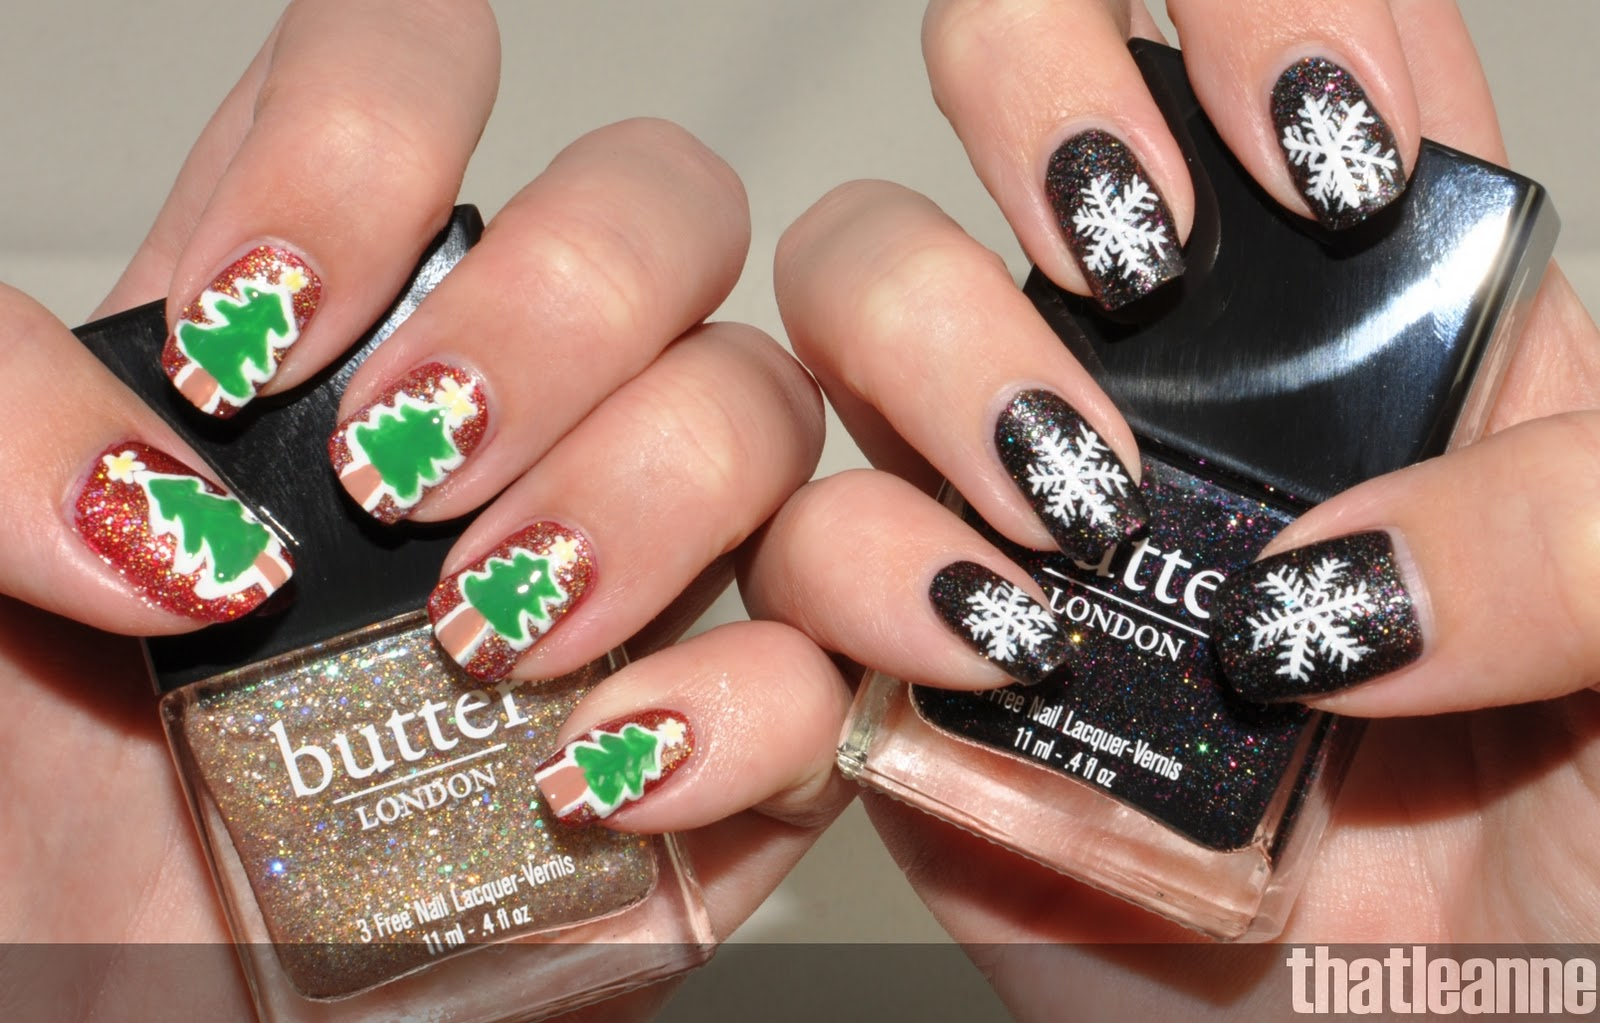 : Simple Holiday Nail Art Ideas feat. Butter London Holiday 2011